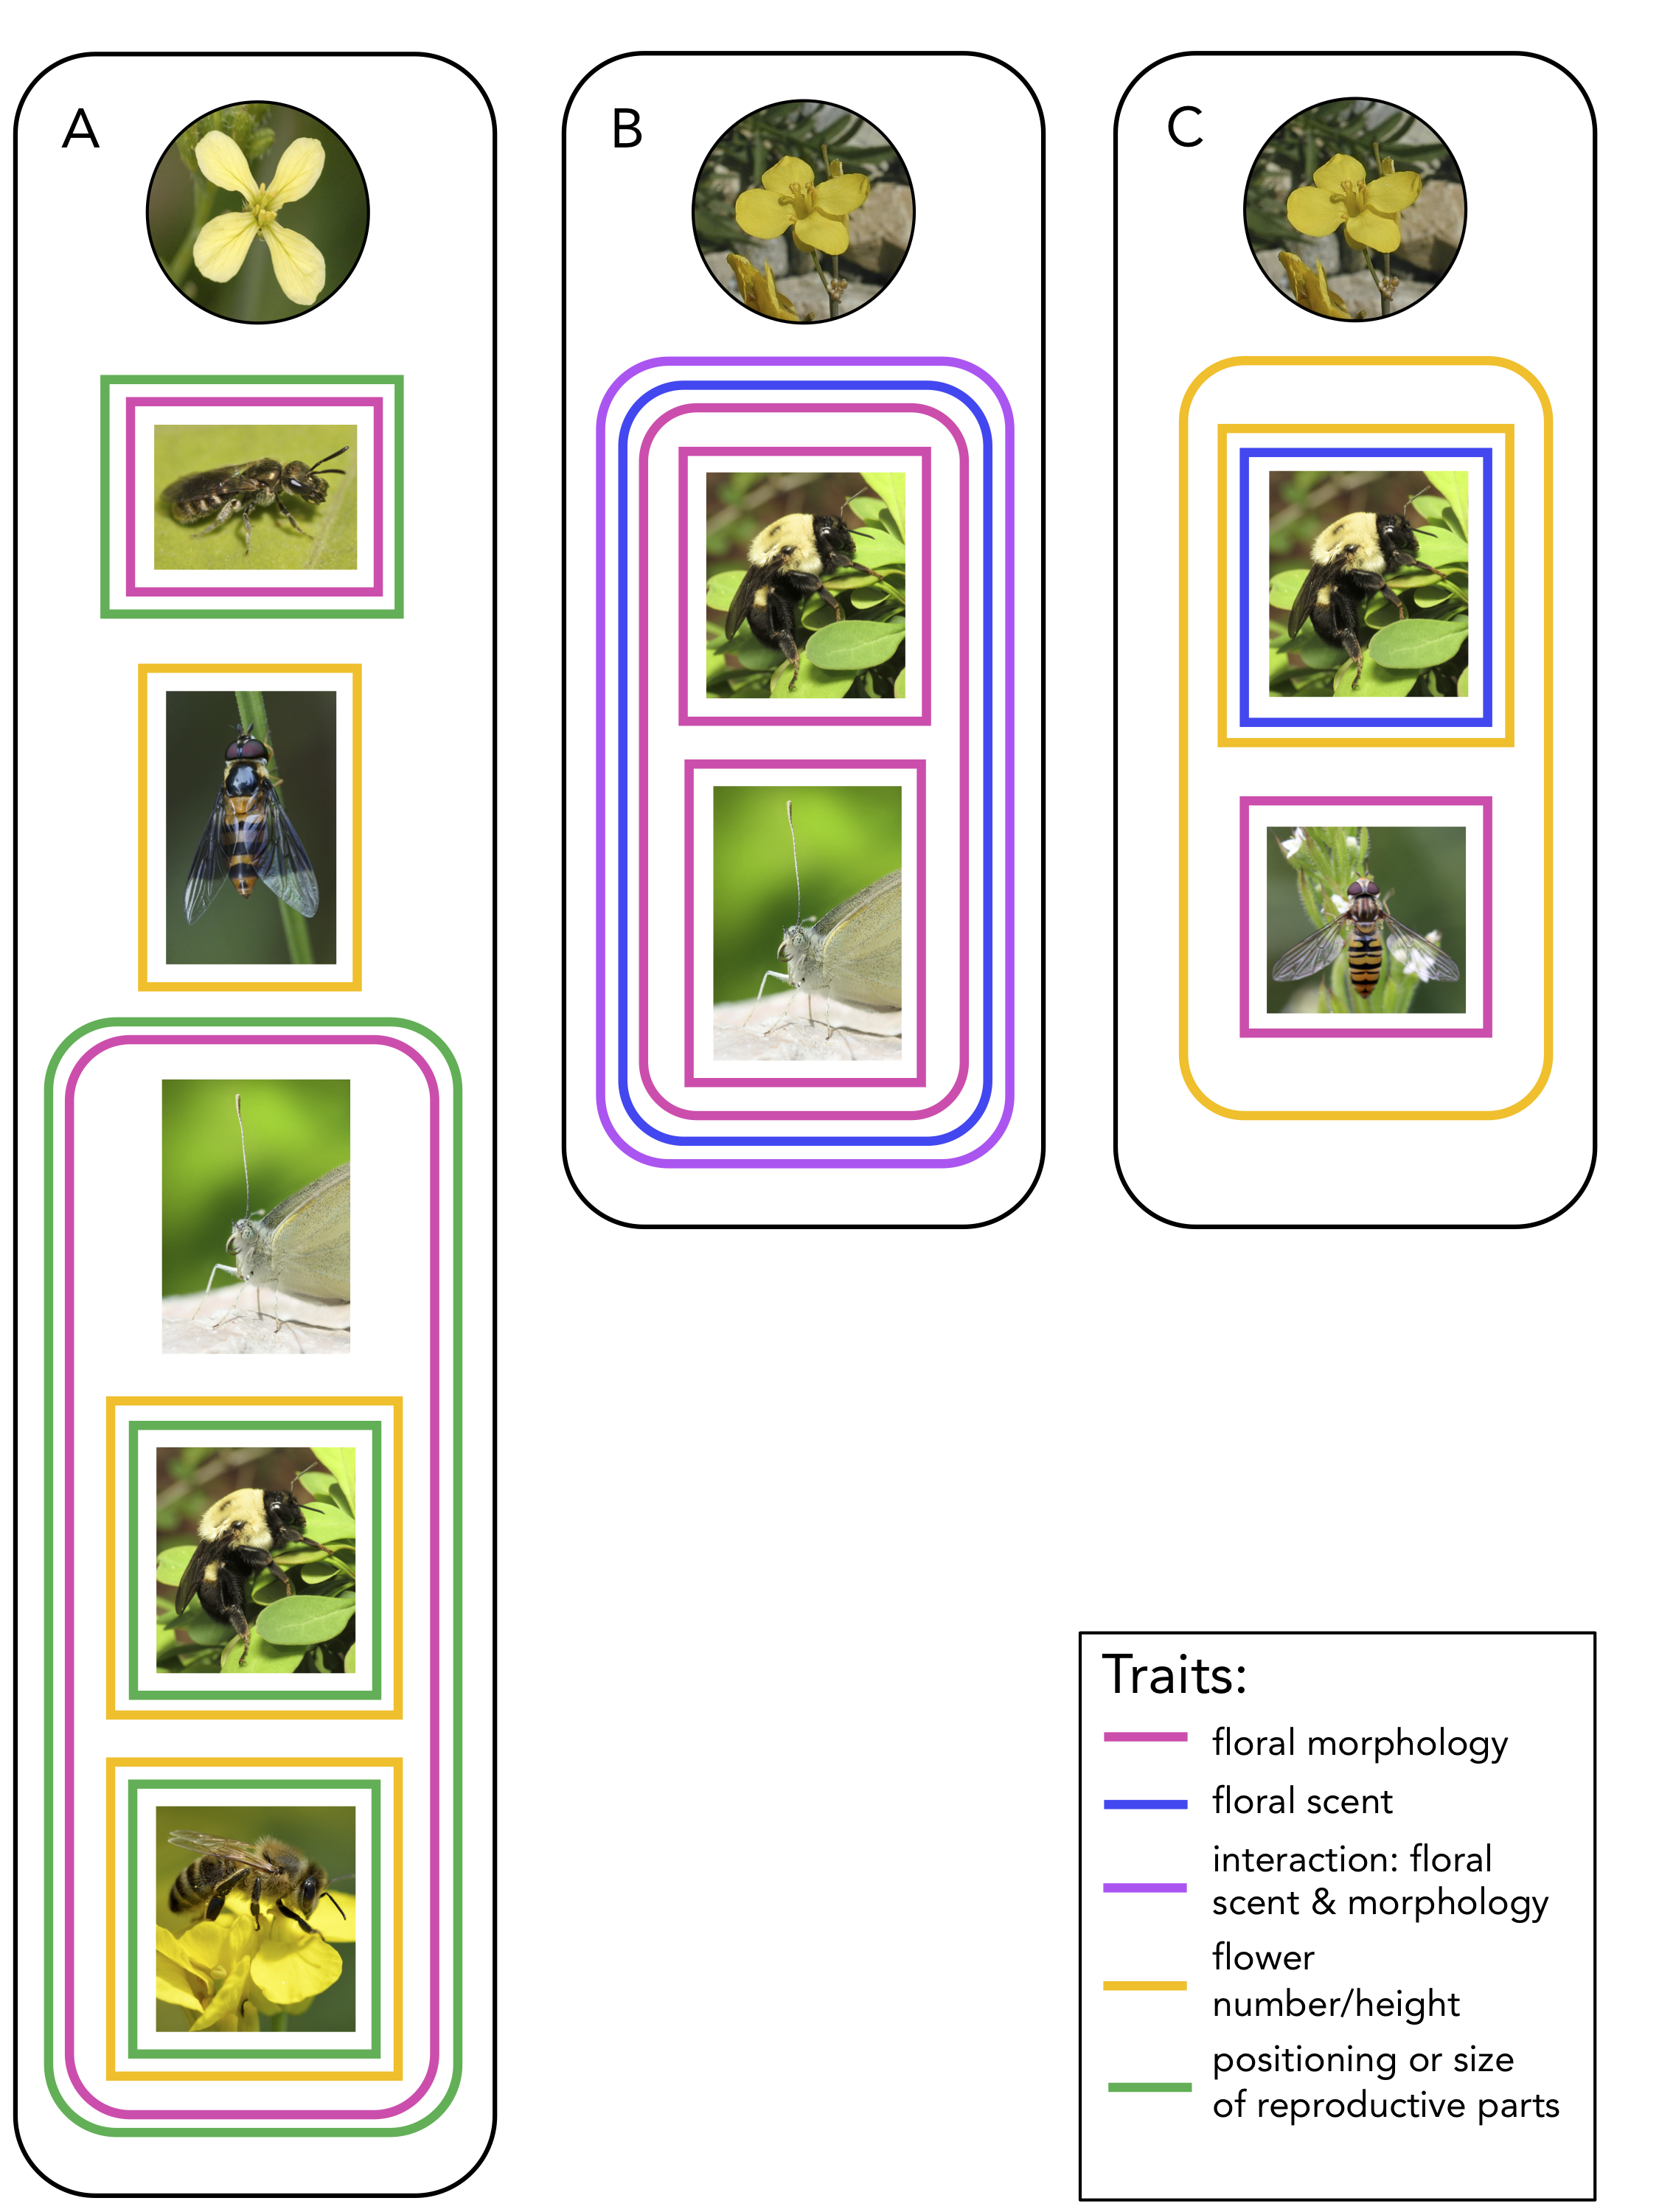 Figure 1 in my digest. This figure summarizes the results of three experiments that have measured selection on the floral traits of plants that were subject to different pollinator treatments. The colored boxes indicate the plants in those treatments experienced selection on a certain type of floral trait.